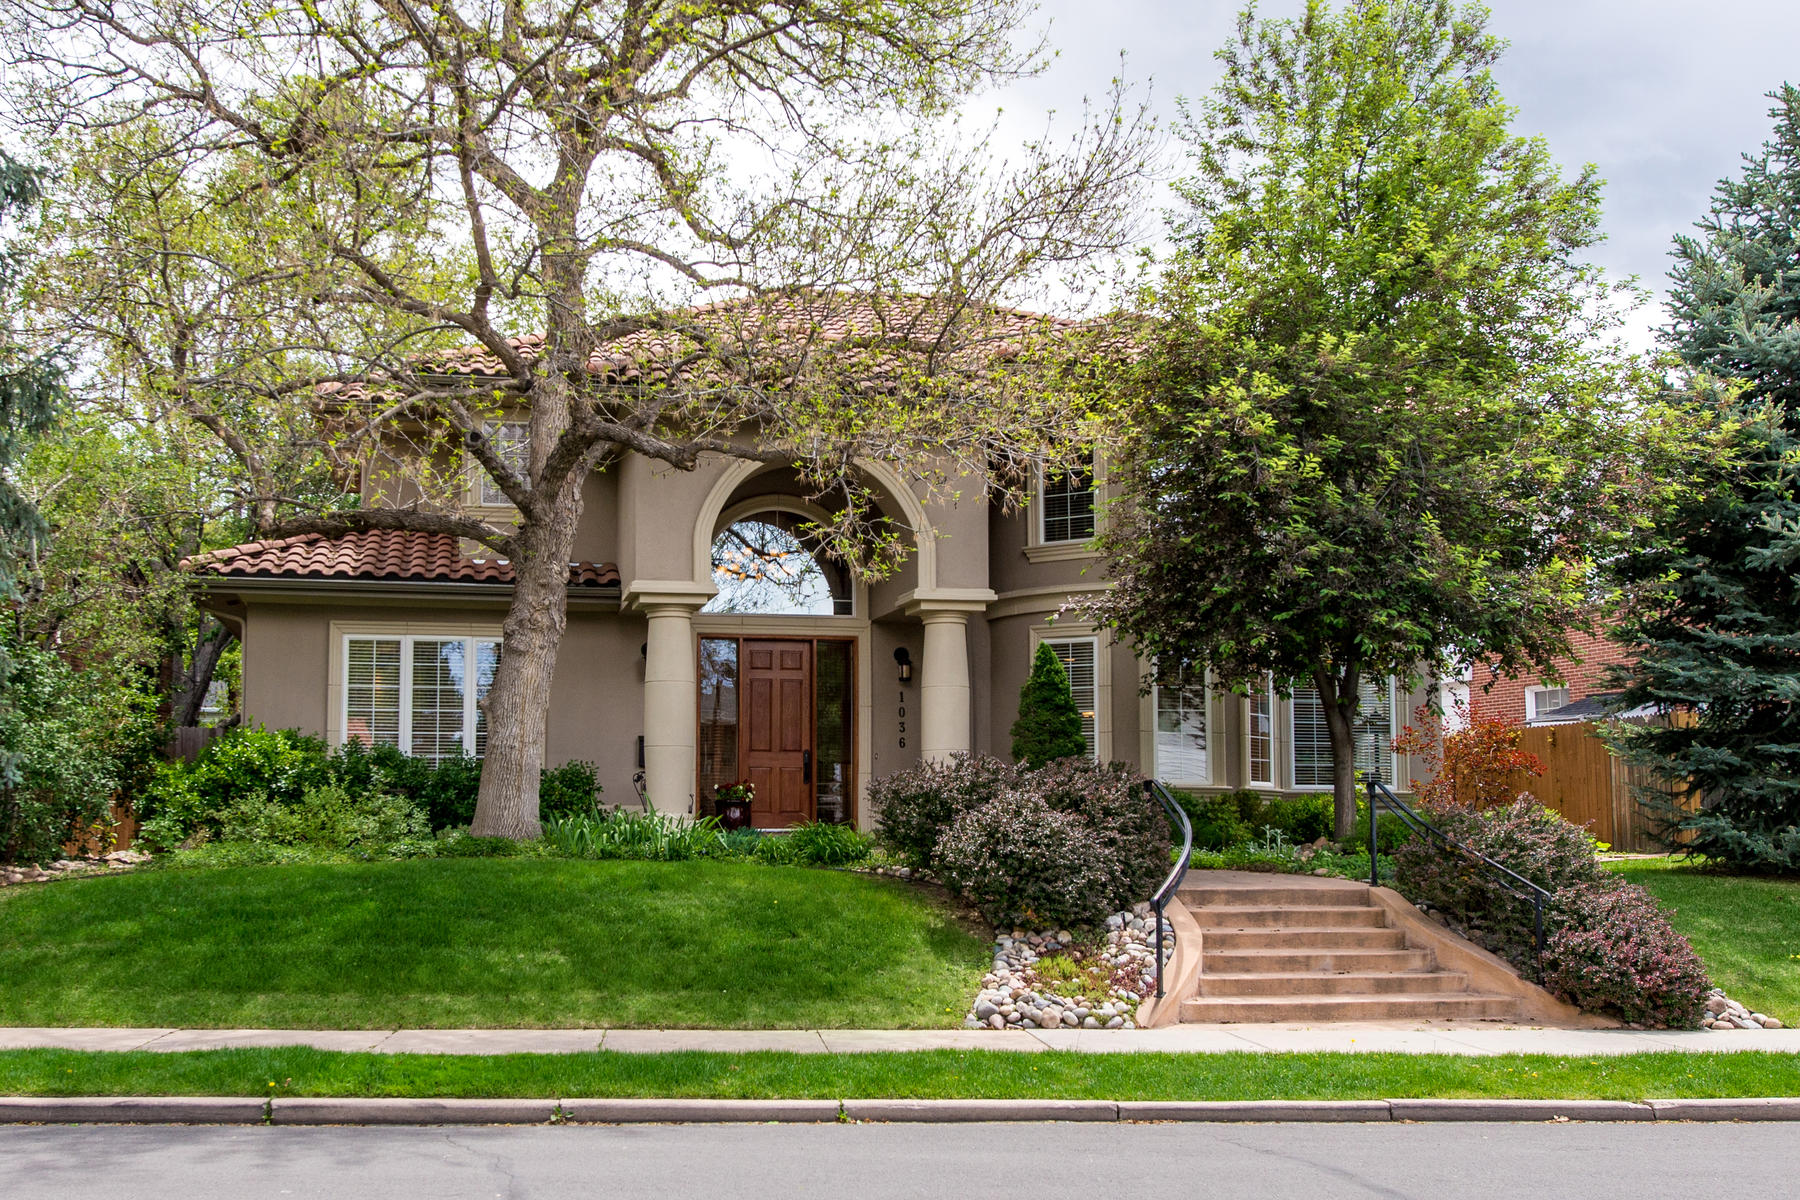 Single Family Home for Active at Tuscan Inspired 1036 S. Clayton Way Denver, Colorado 80209 United States